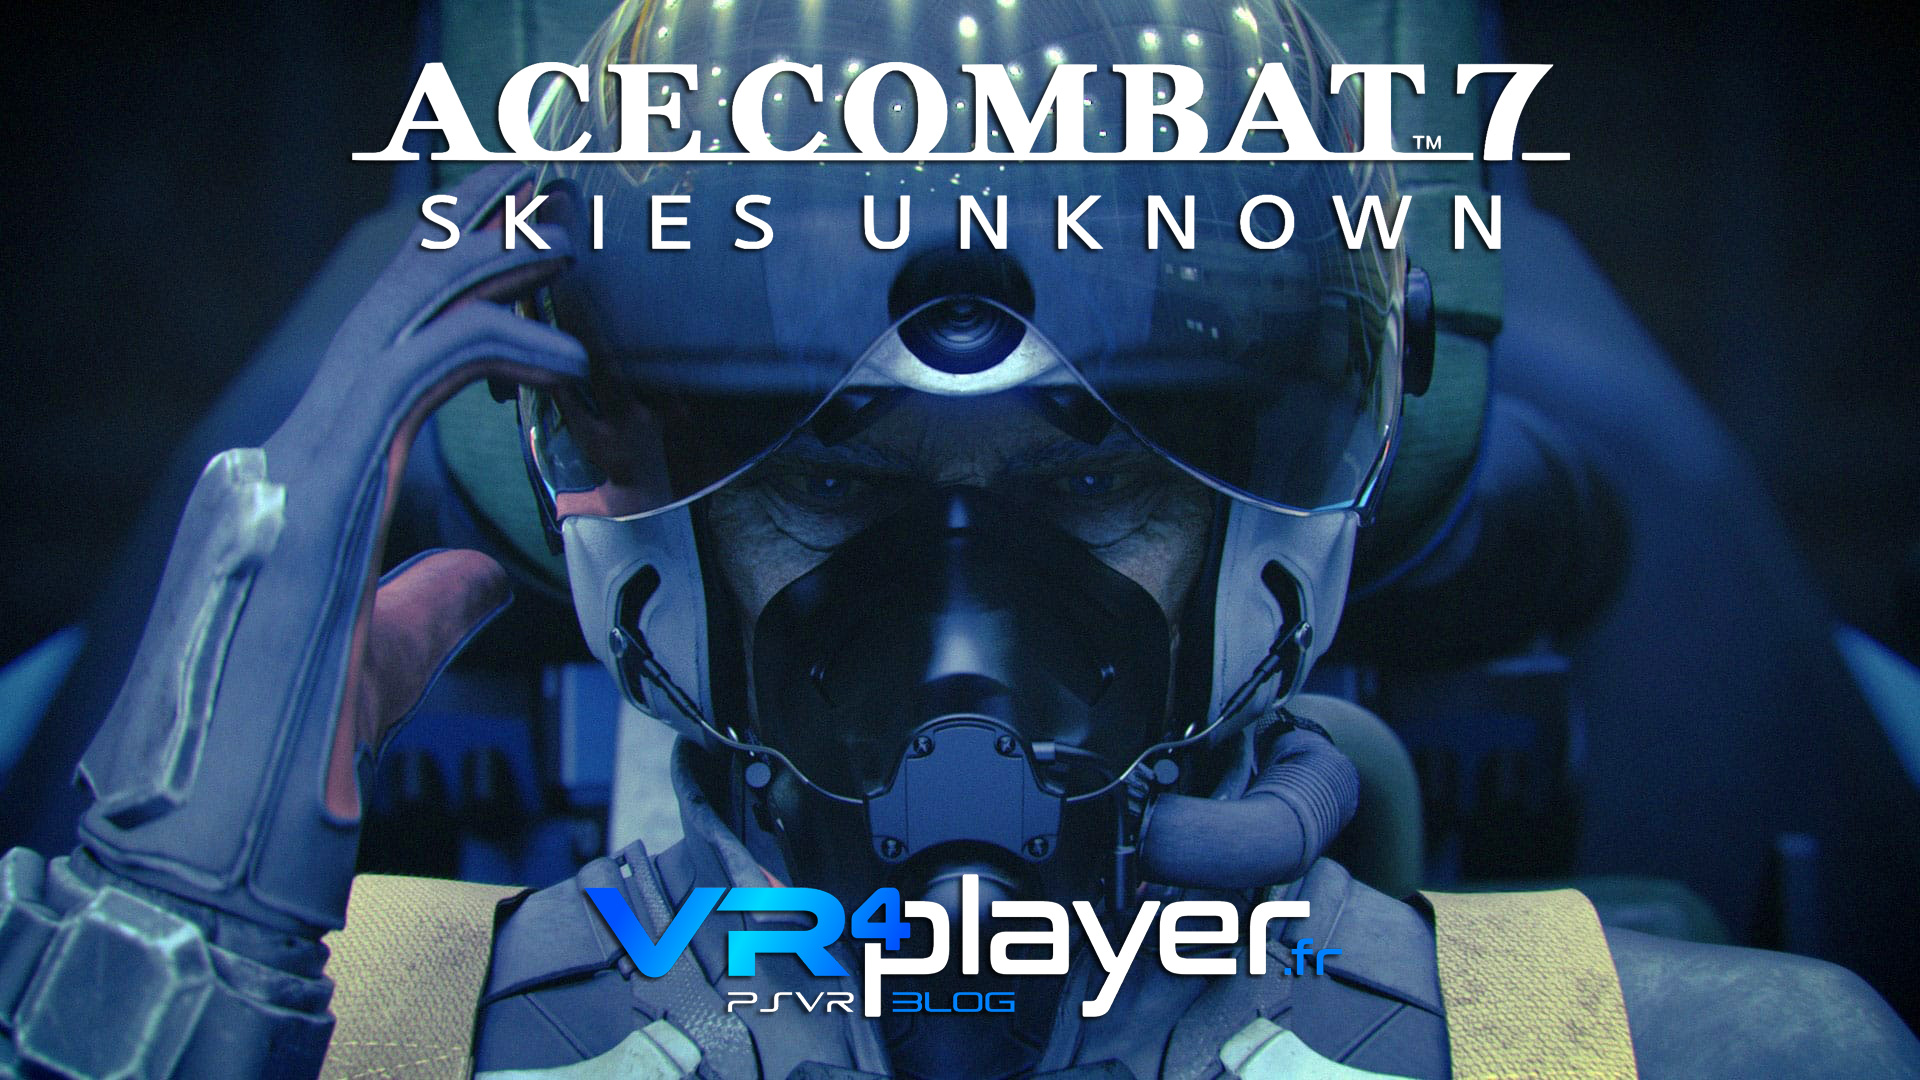 Ace Combat 7 sur PSVR - vr4player.fr